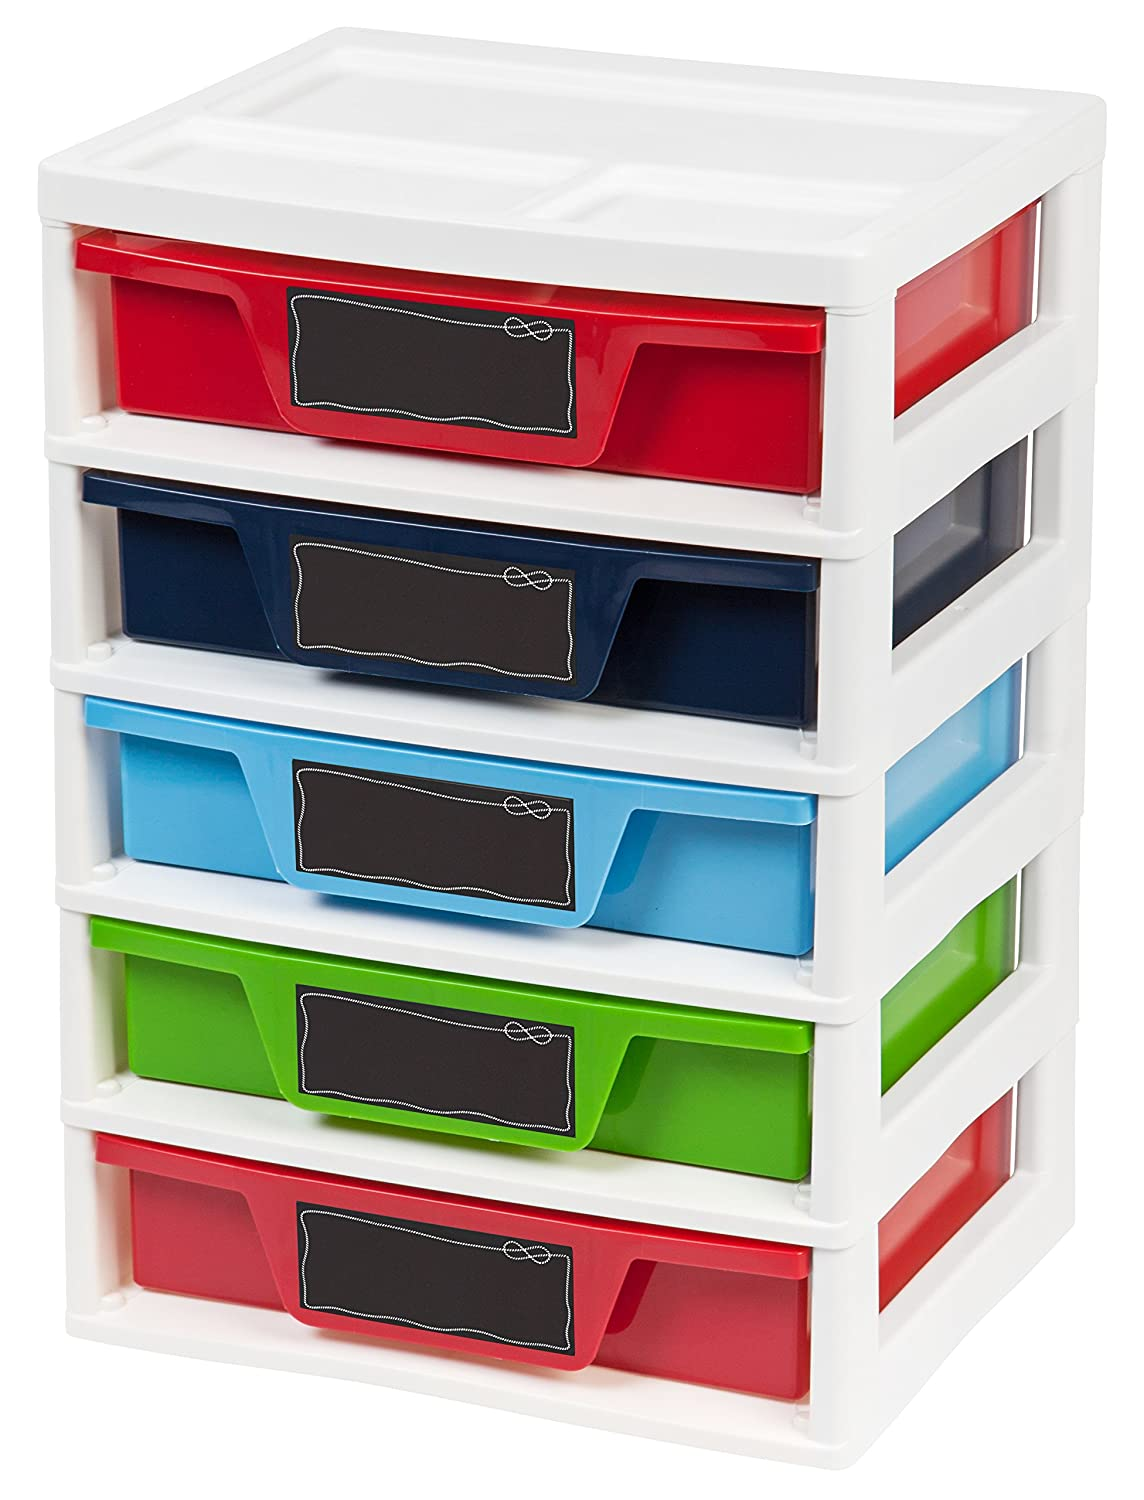 IRIS 3-Drawer Activity Chest with Organizer Top, Assorted Colors IRIS USA Inc. 150315